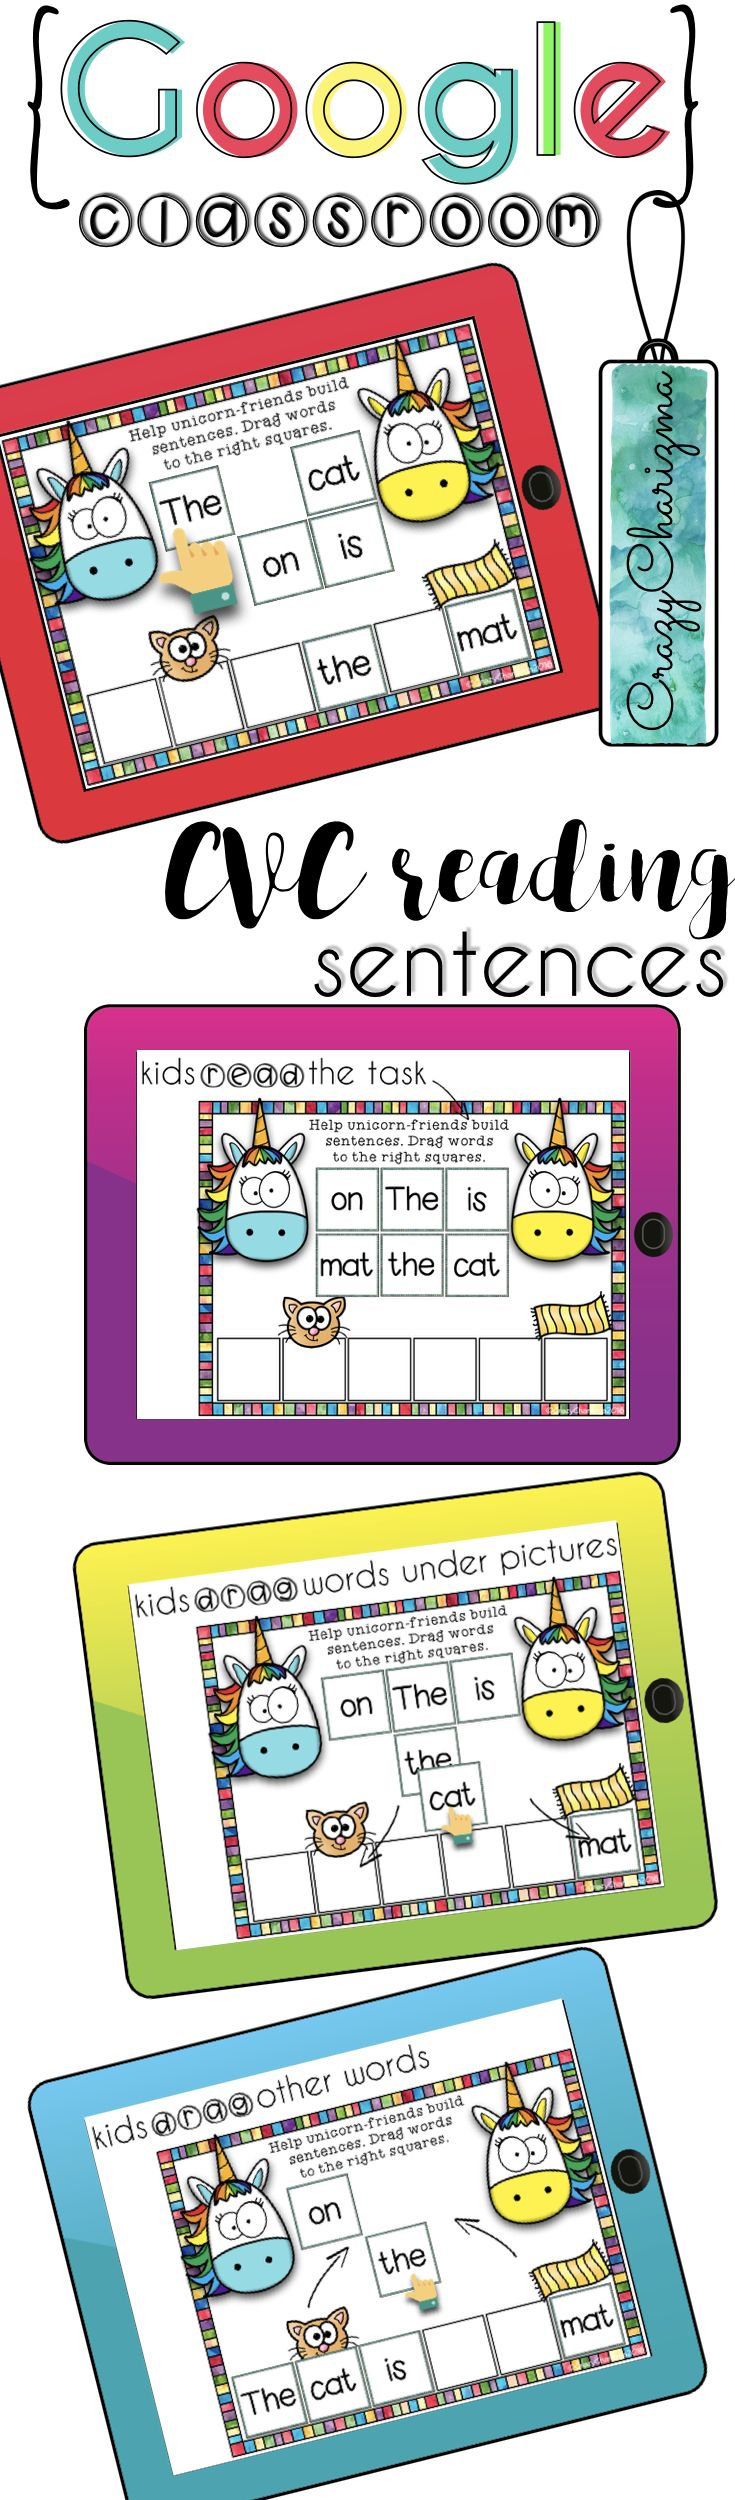 Go {Google} now! Would you like to go paperless and engage your kids? Looking for something you can use over and over? Embrace technology - go Google now! Practice CVC words with this digital Unicorn sentences. | CrazyCharizma